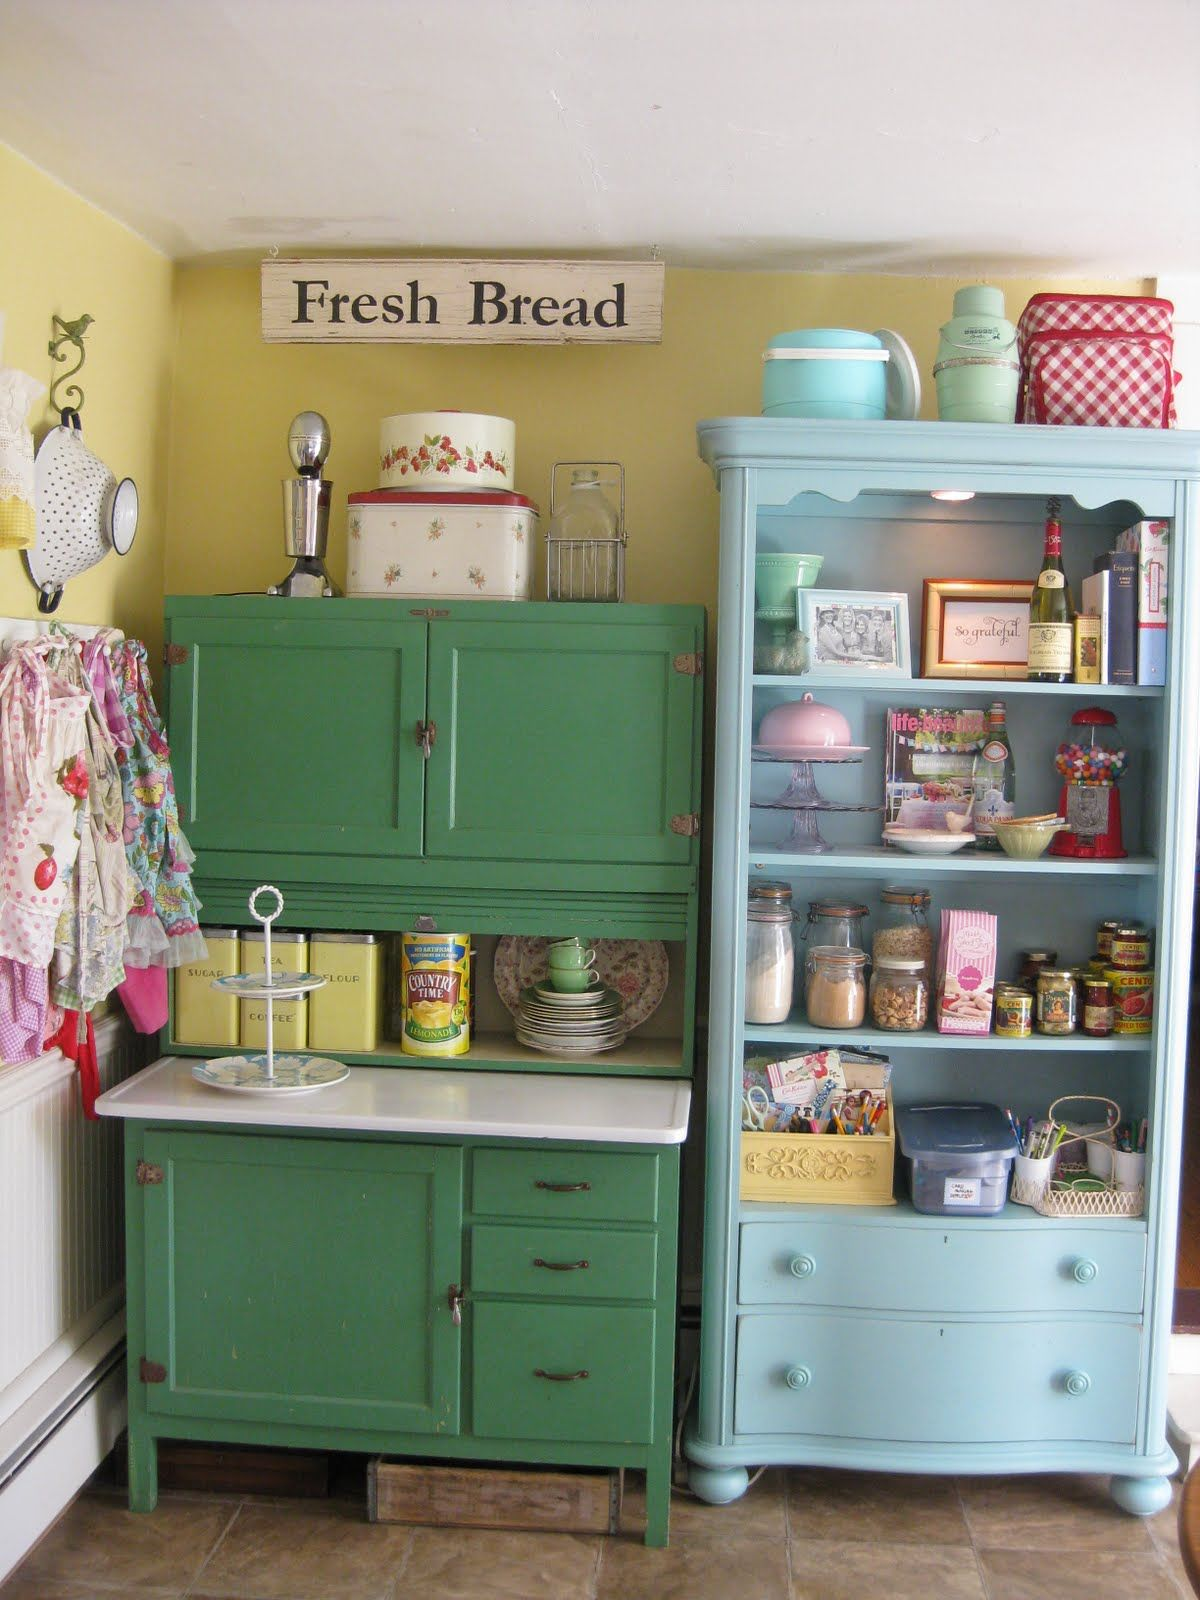 Vintage Kitchen Ideas: Colorful Vintage Kitchen Storage Ideas Pictures, Photos